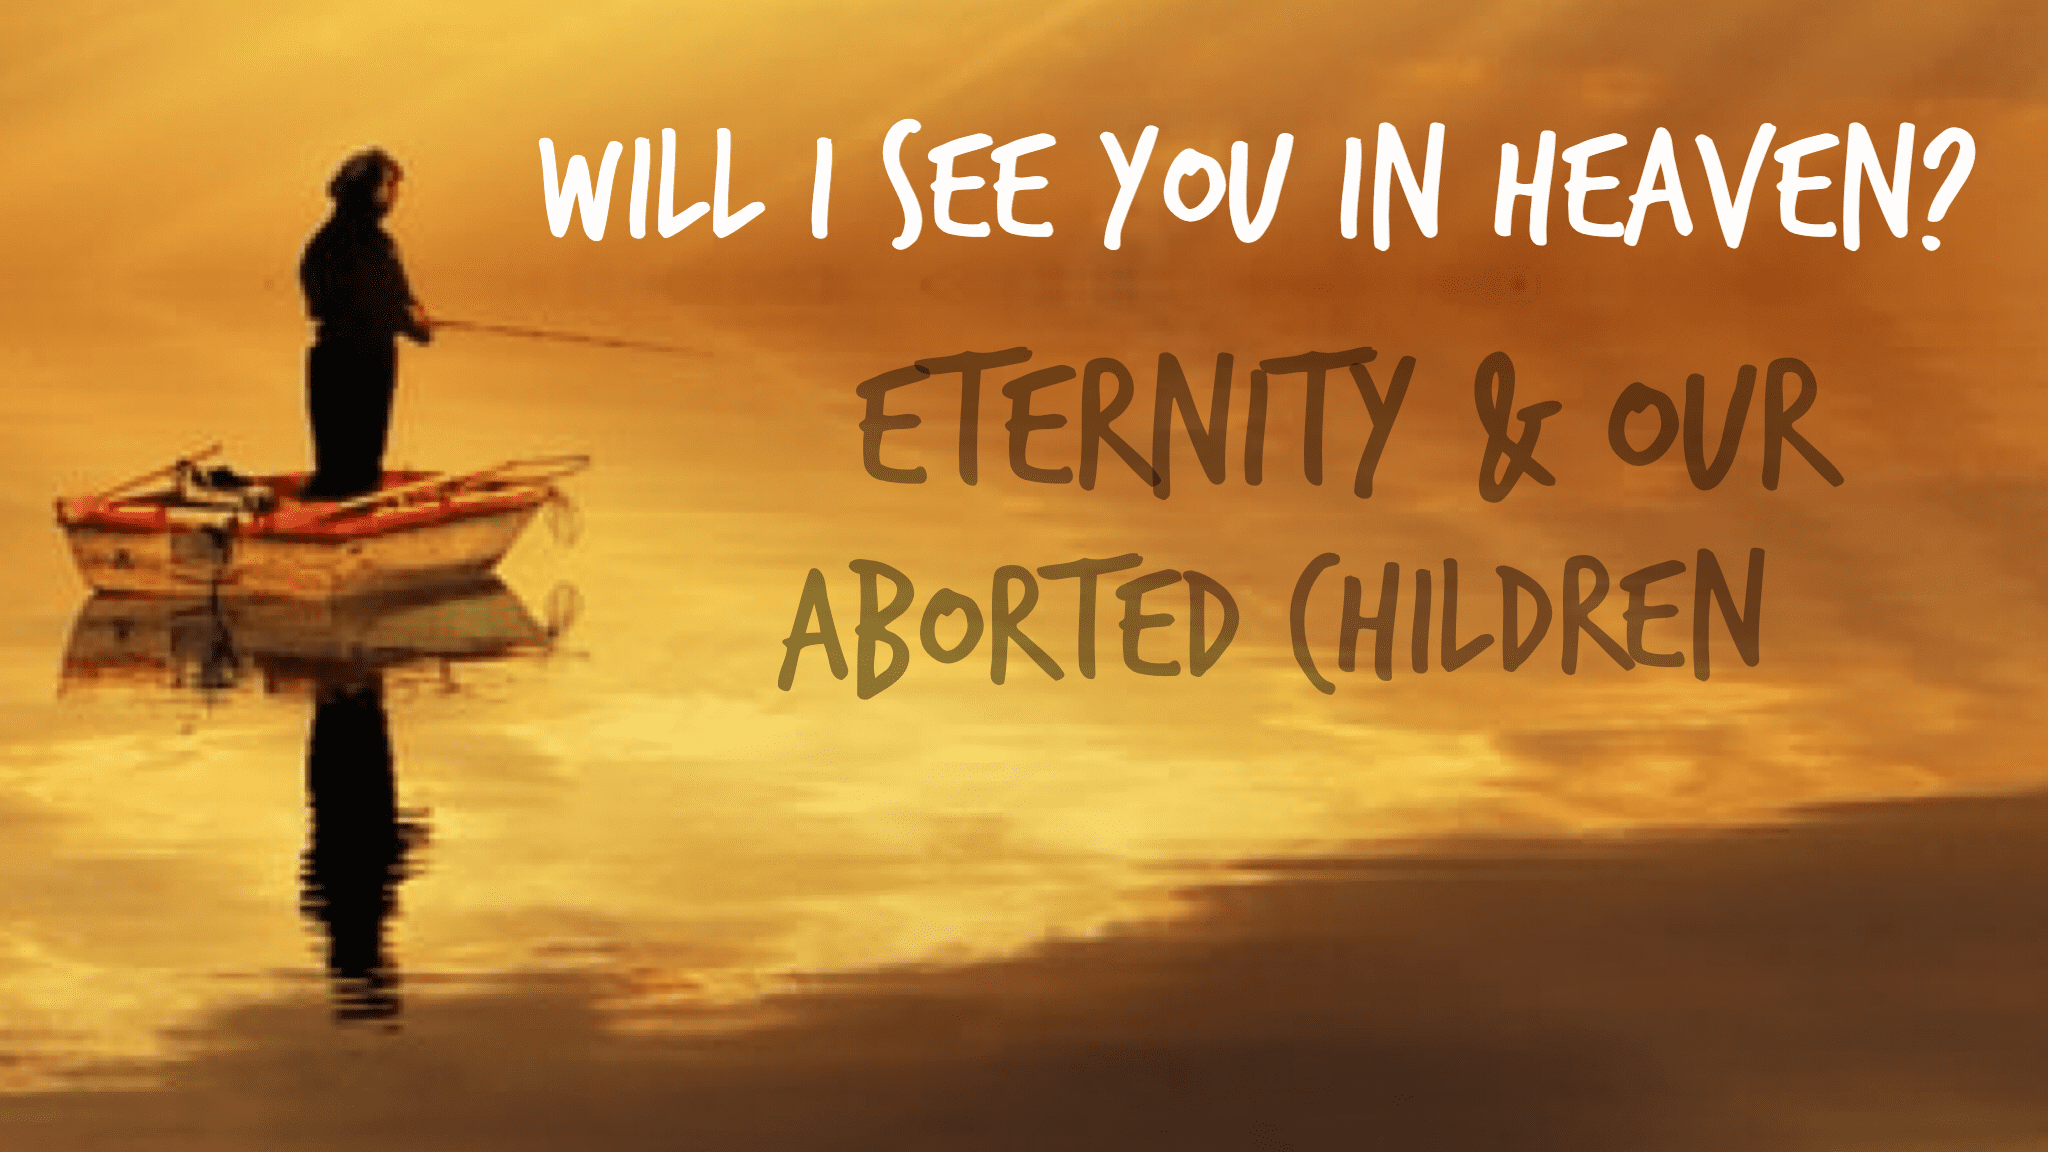 Will I See You in Heaven? Eternity & Oiur Aborted Children